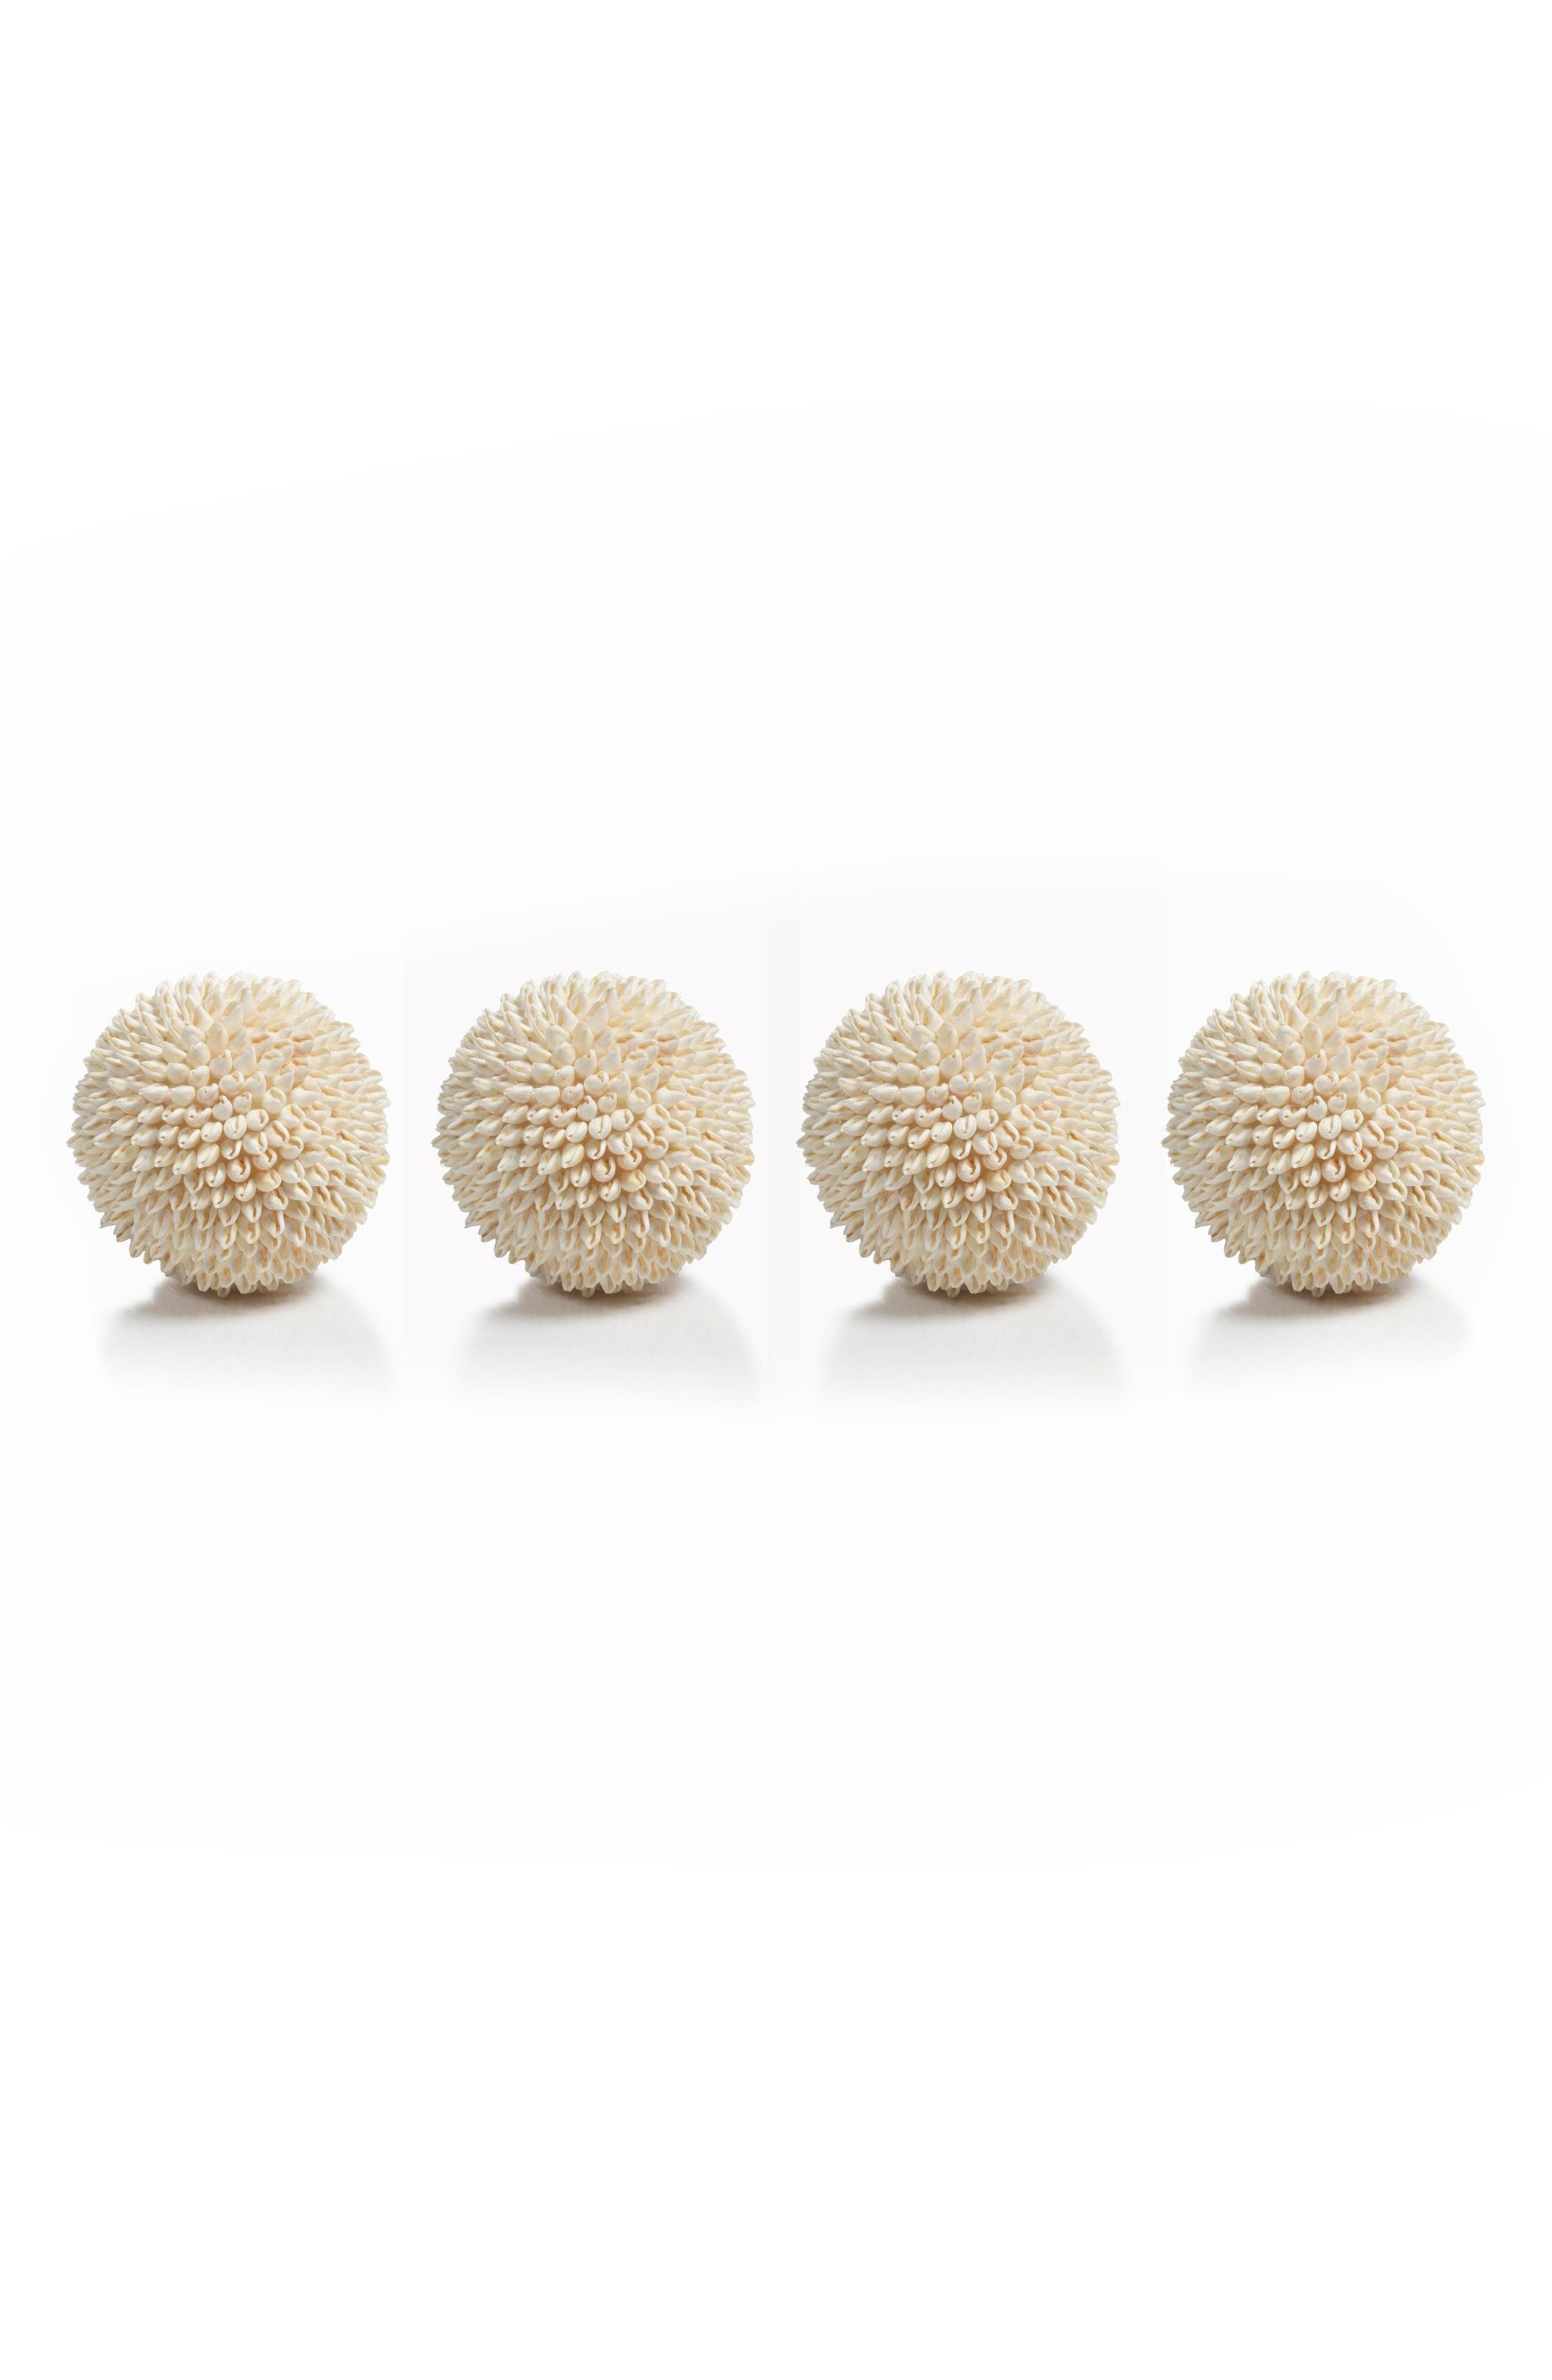 Palay Set of 4 Shell Decorations,                             Main thumbnail 1, color,                             Beige